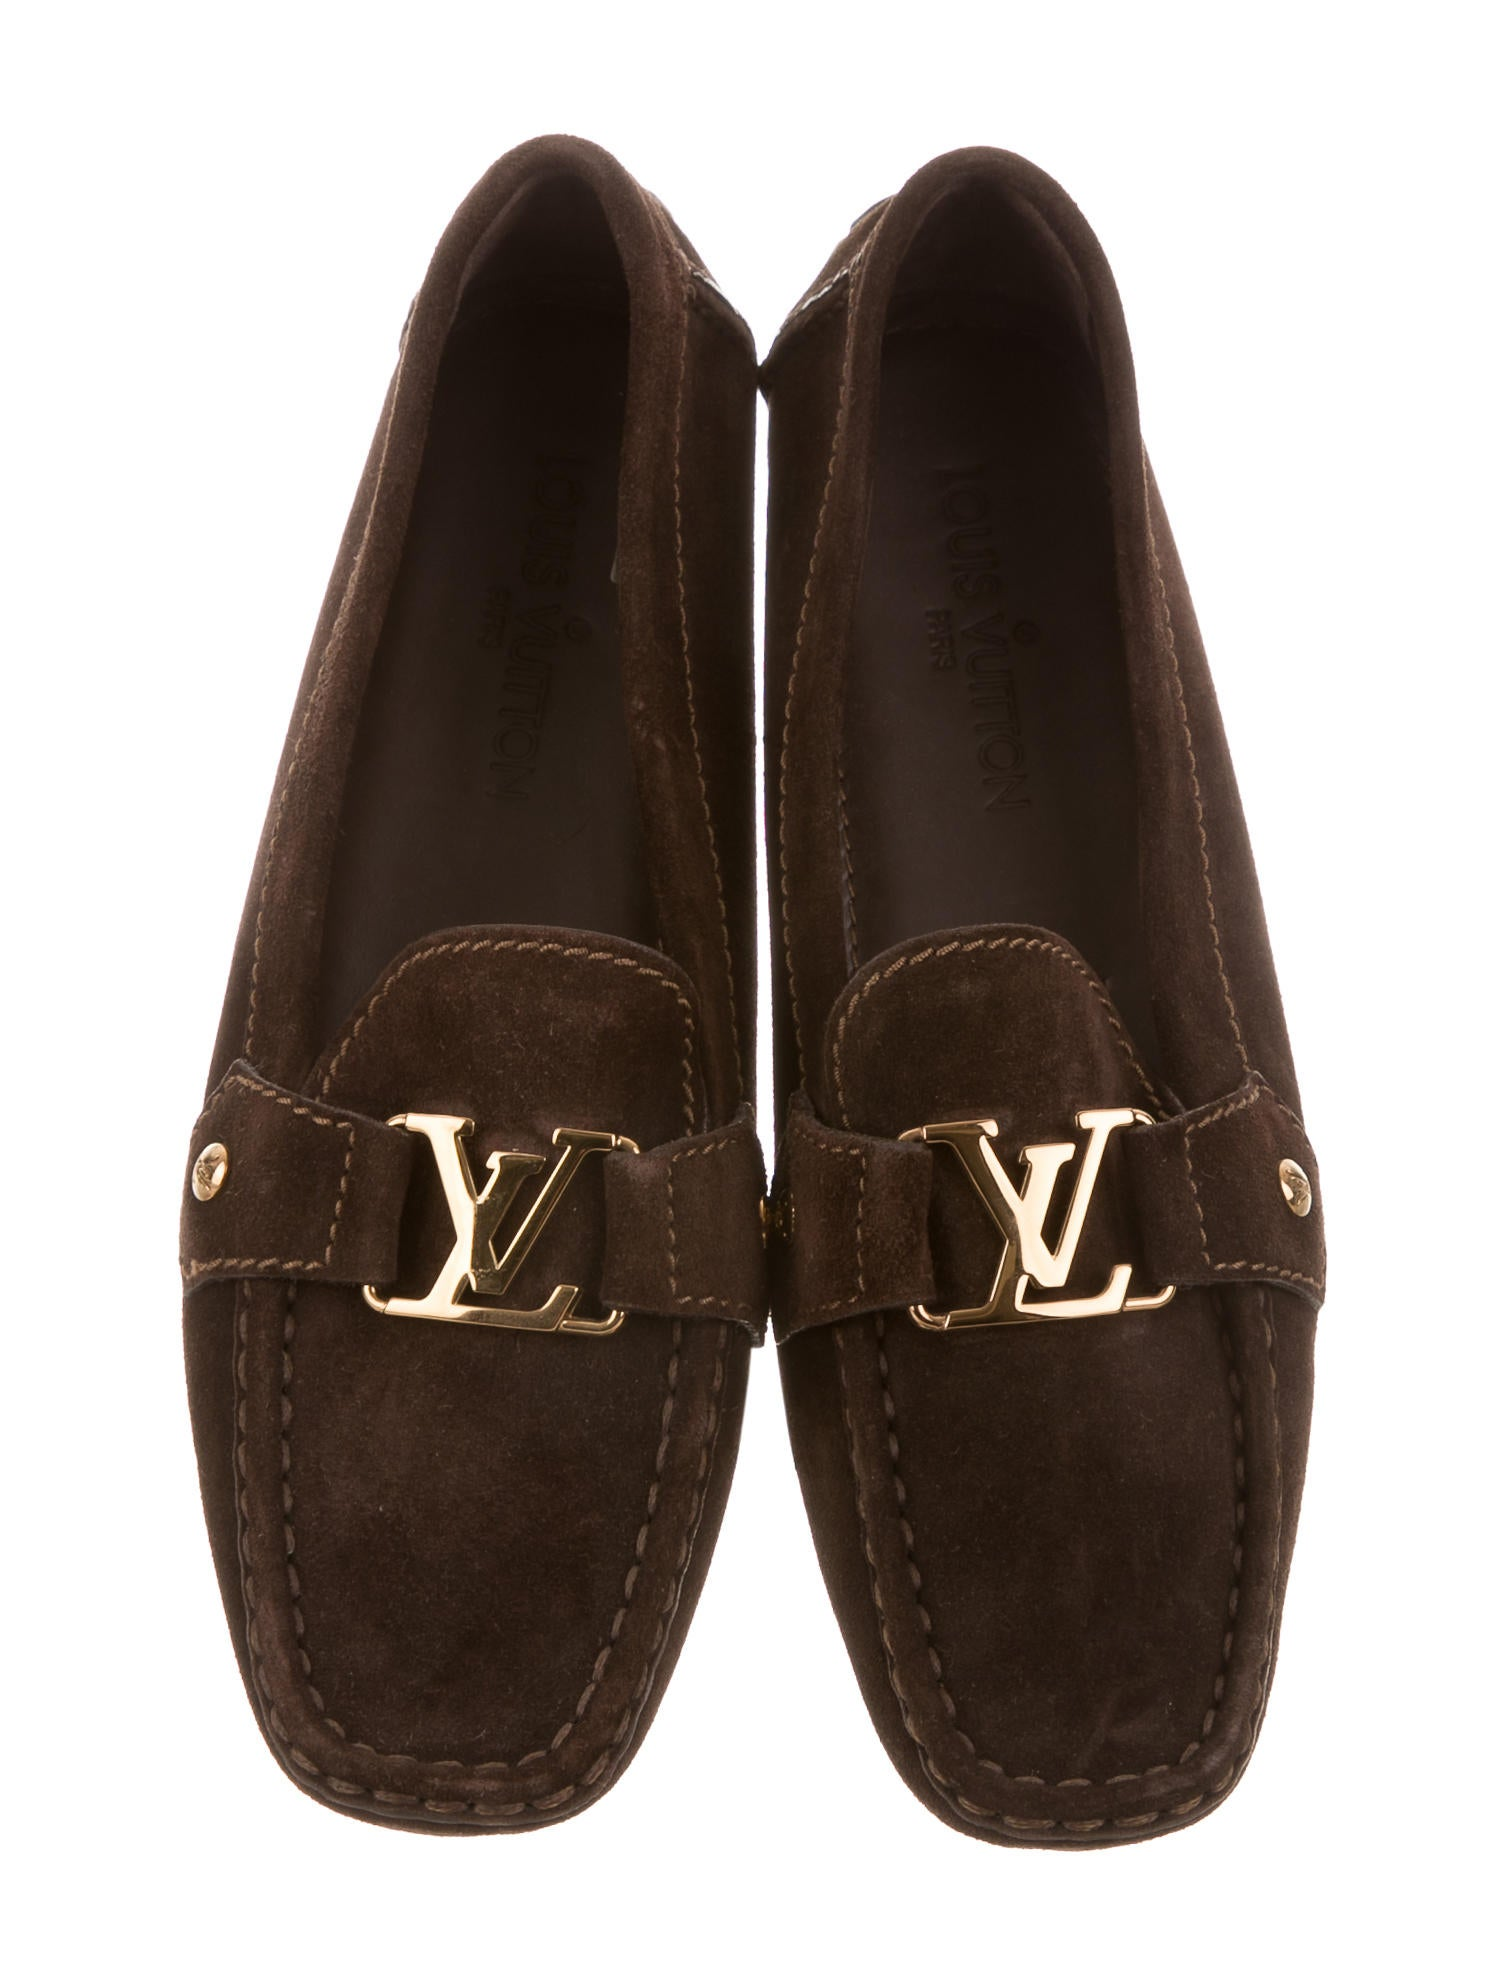 Louis Vuitton Suede Driving Loafers Shoes Lou110242 The Realreal